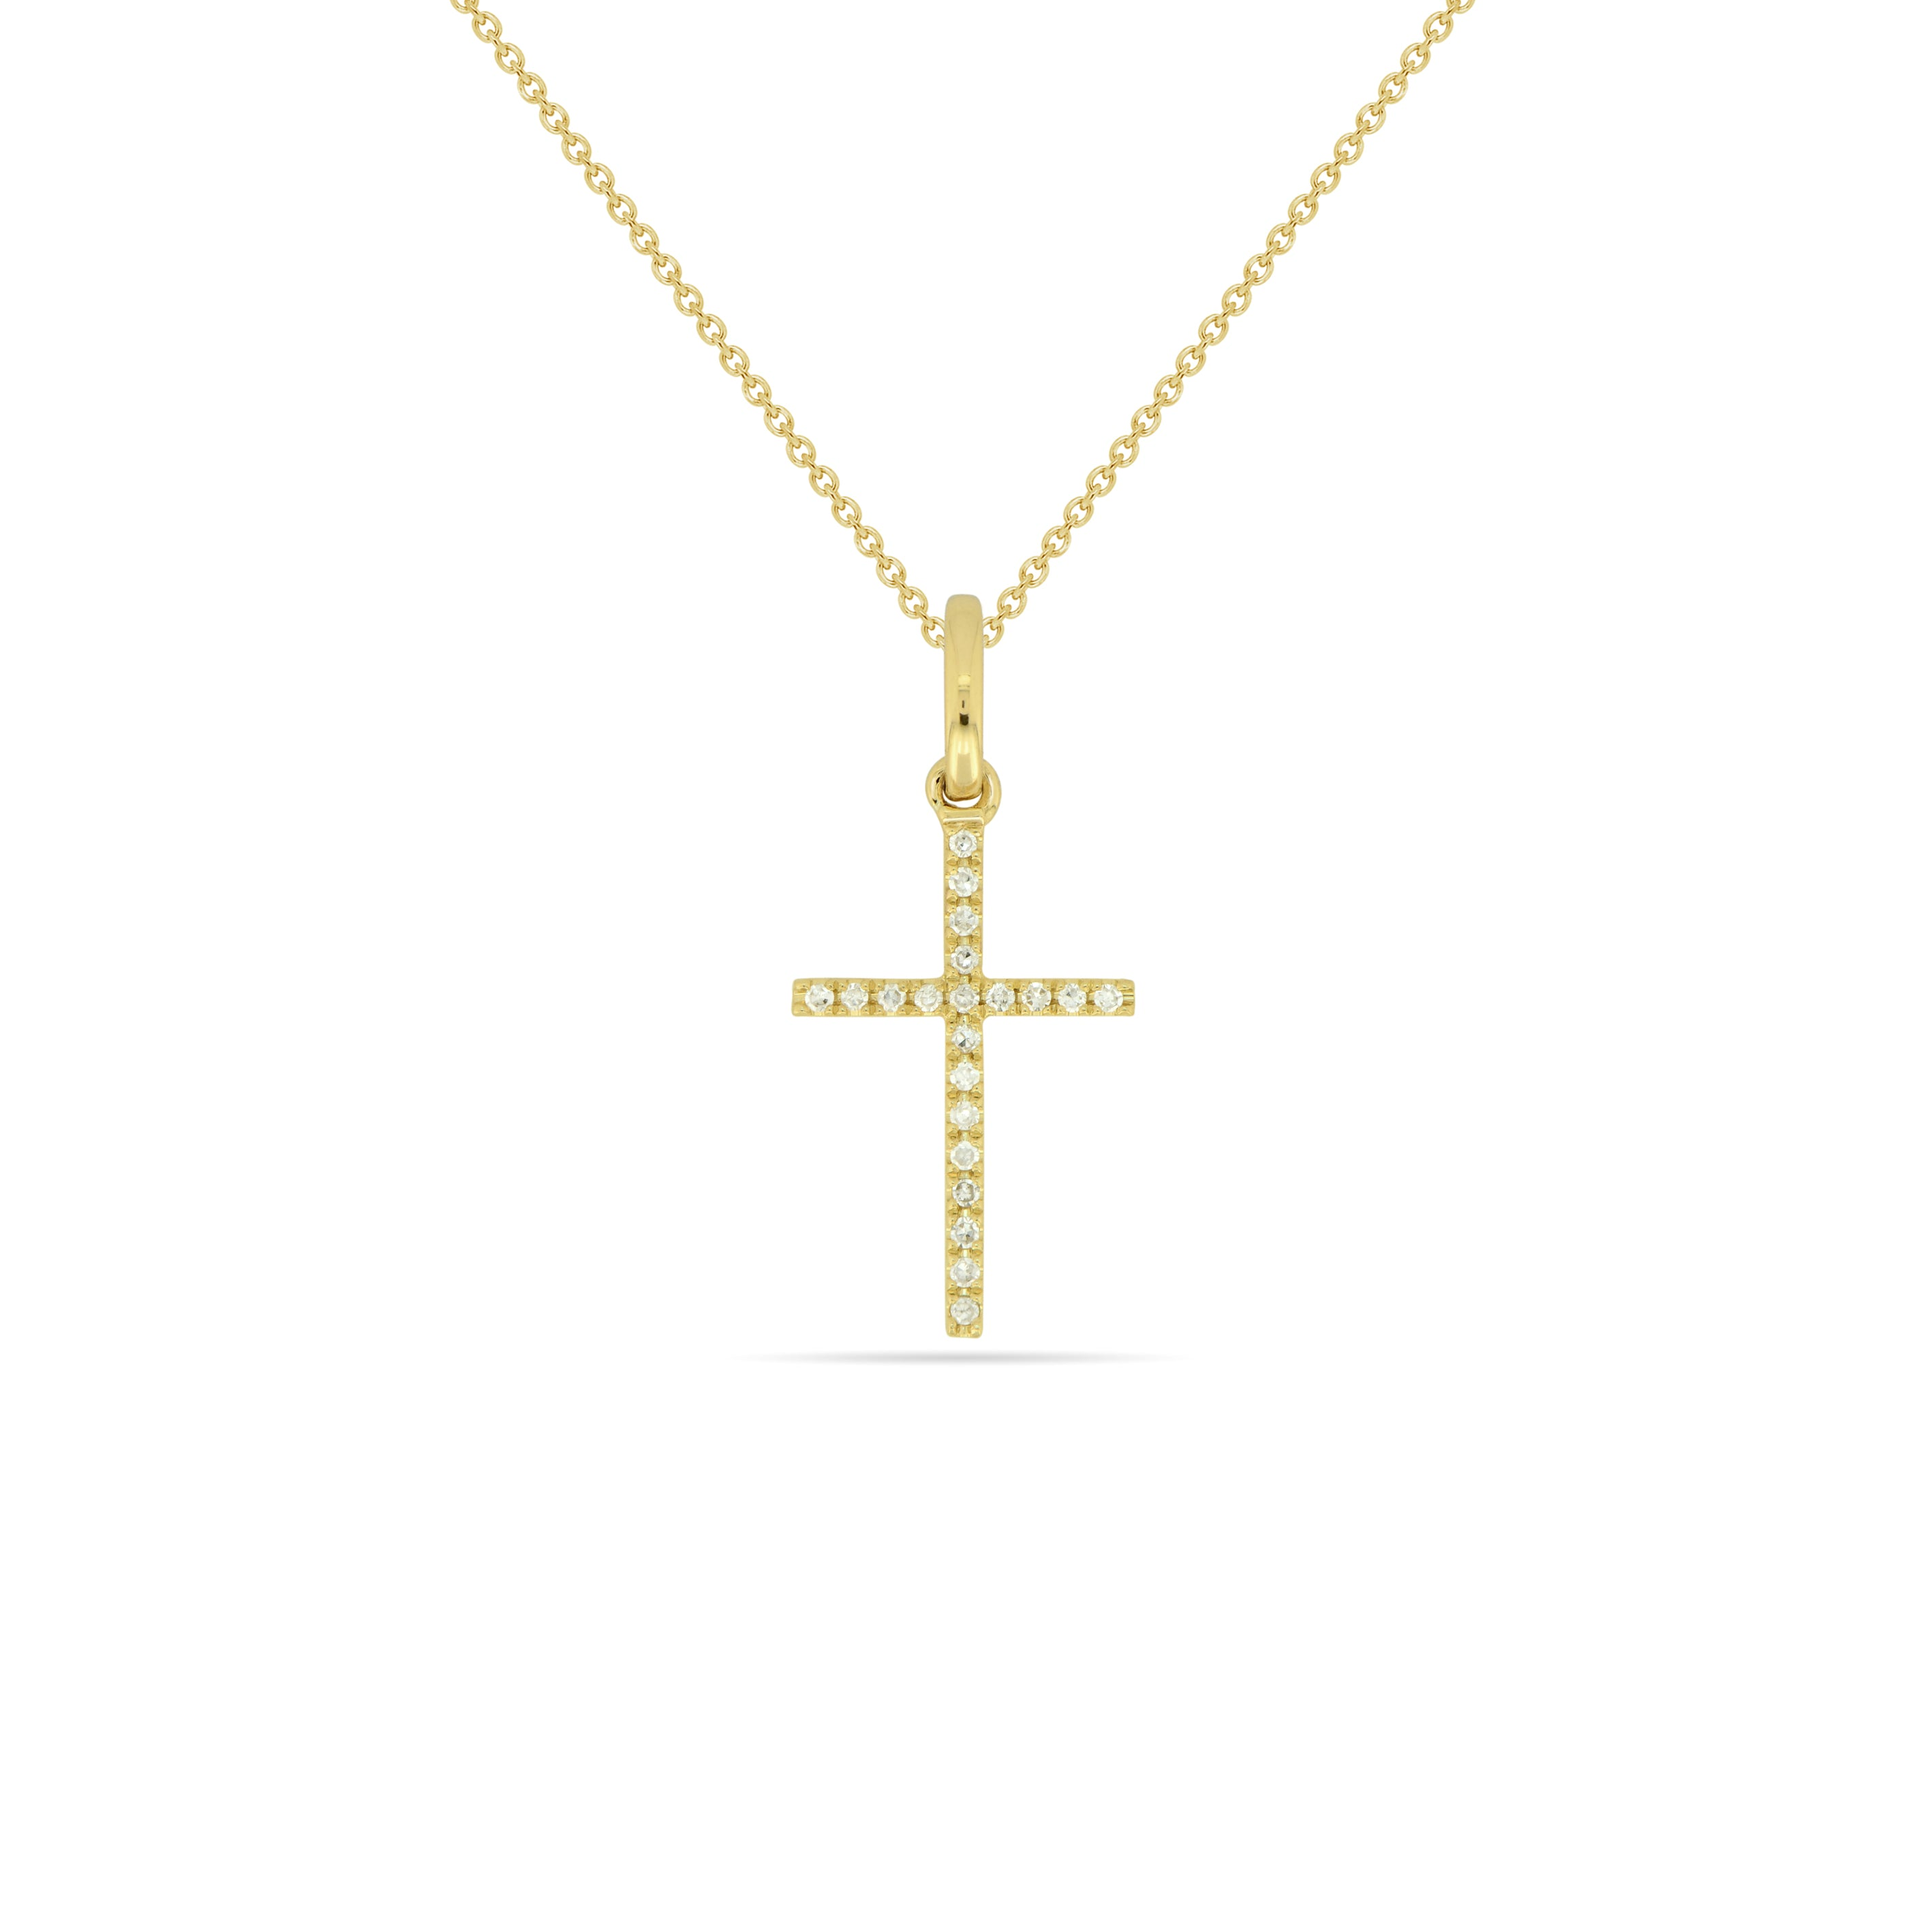 LARGE Cross Necklace , Necklaces - Fine Jewelry, RoCHIC, RoCHIC Fine Jewelry